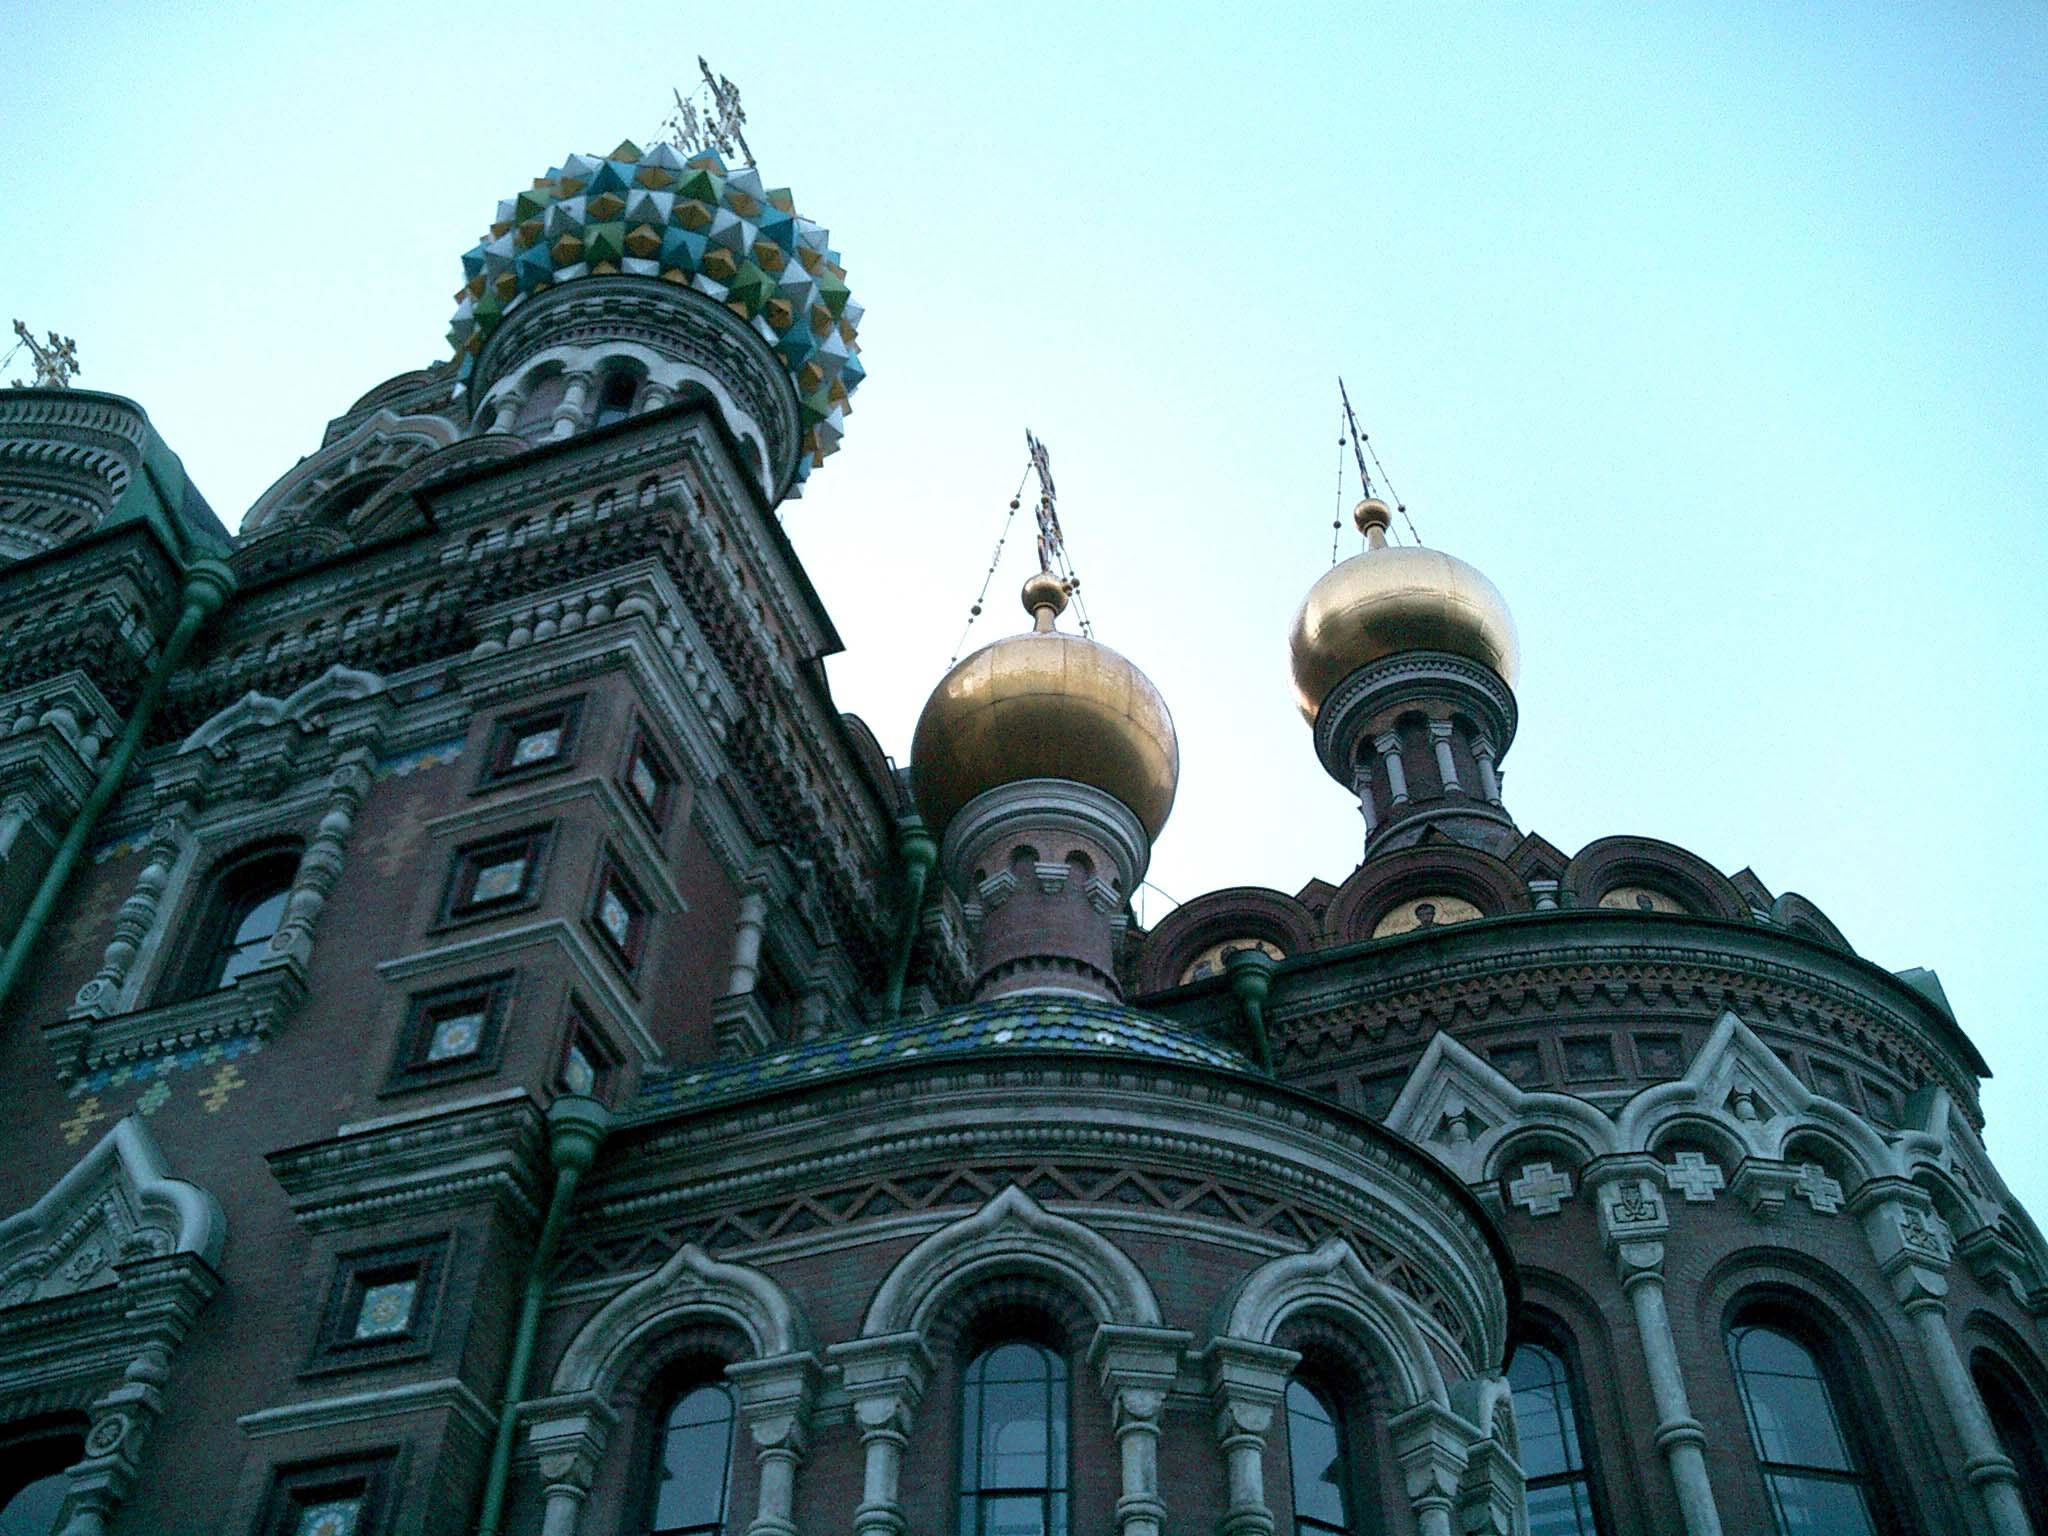 St Petersburg Architecture Church of the Savior on Blood 2005 06